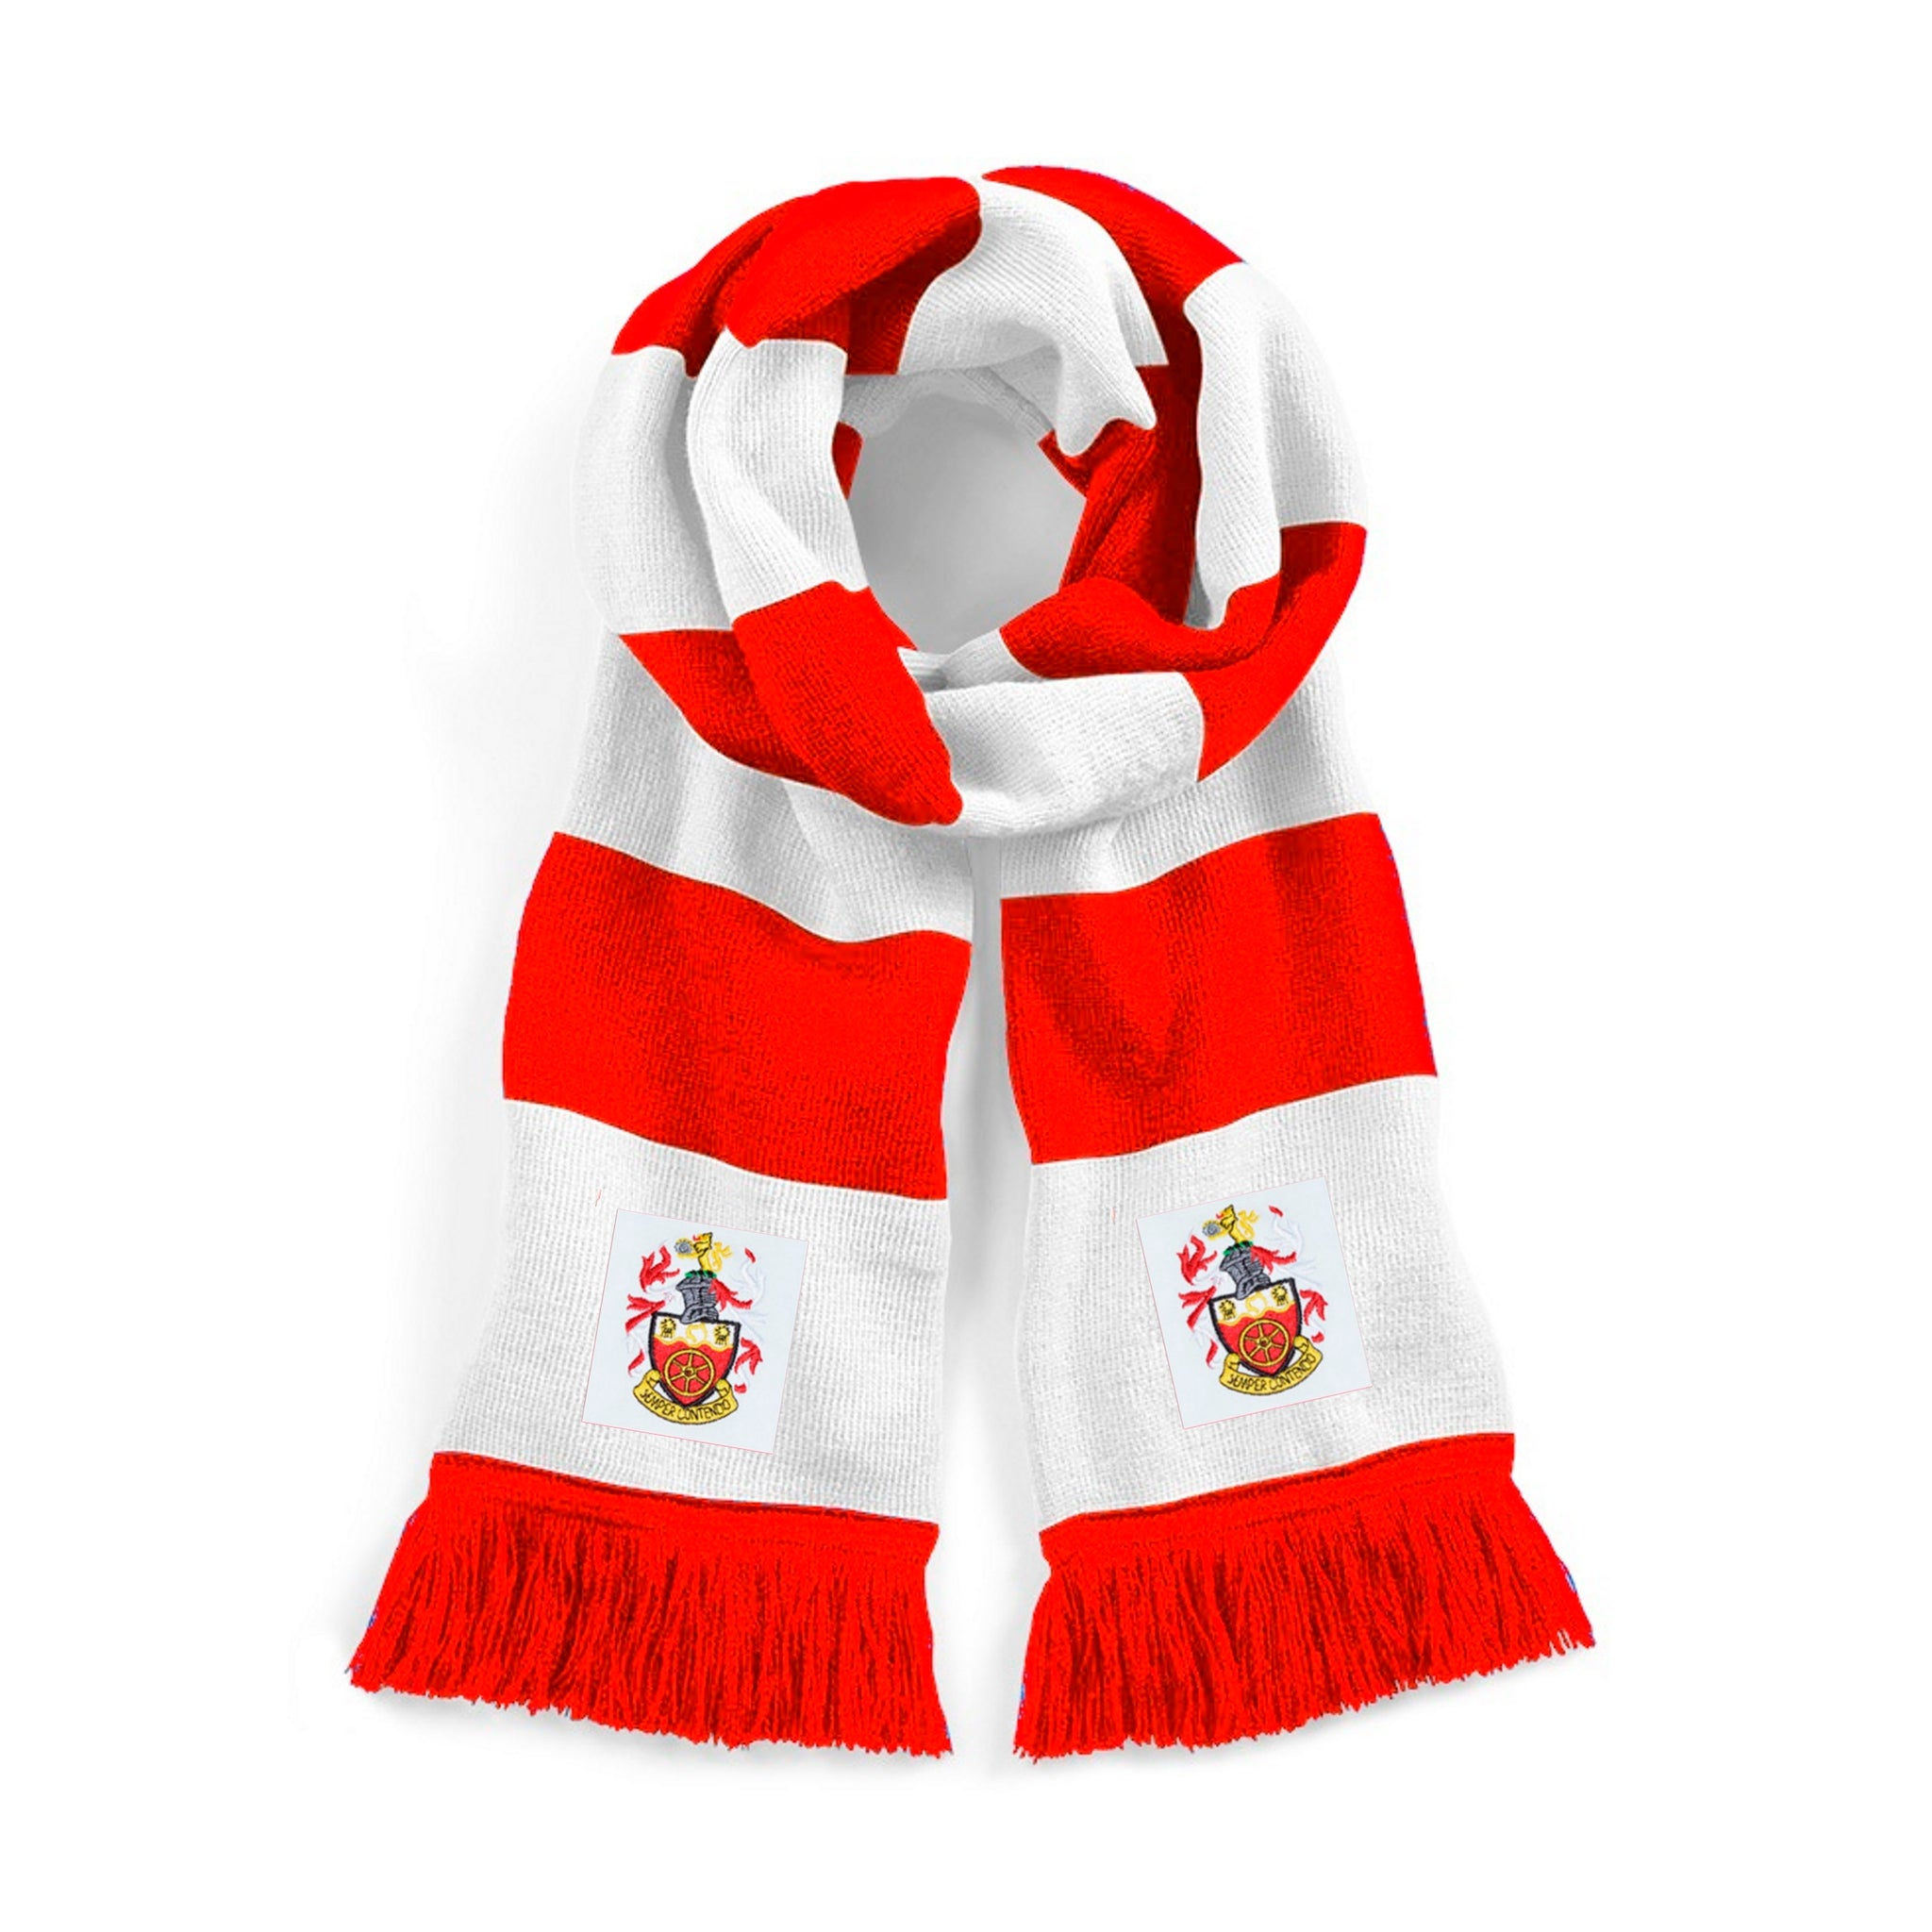 Crewe Alexandra Retro Traditional Football Scarf 1960s - Scarf